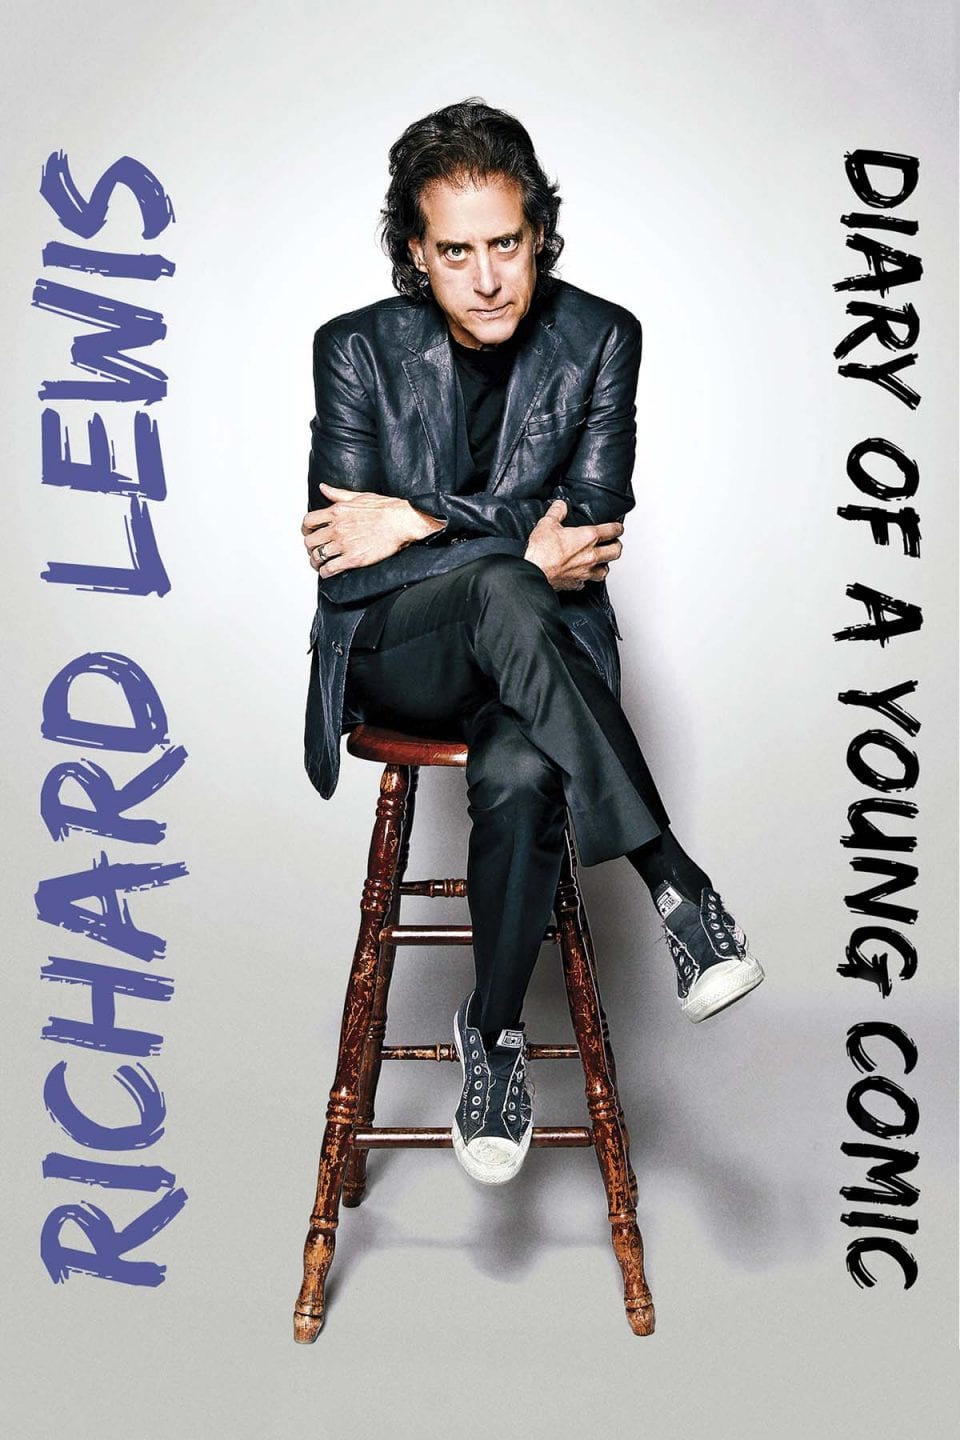 Richard Lewis diary of a young comic